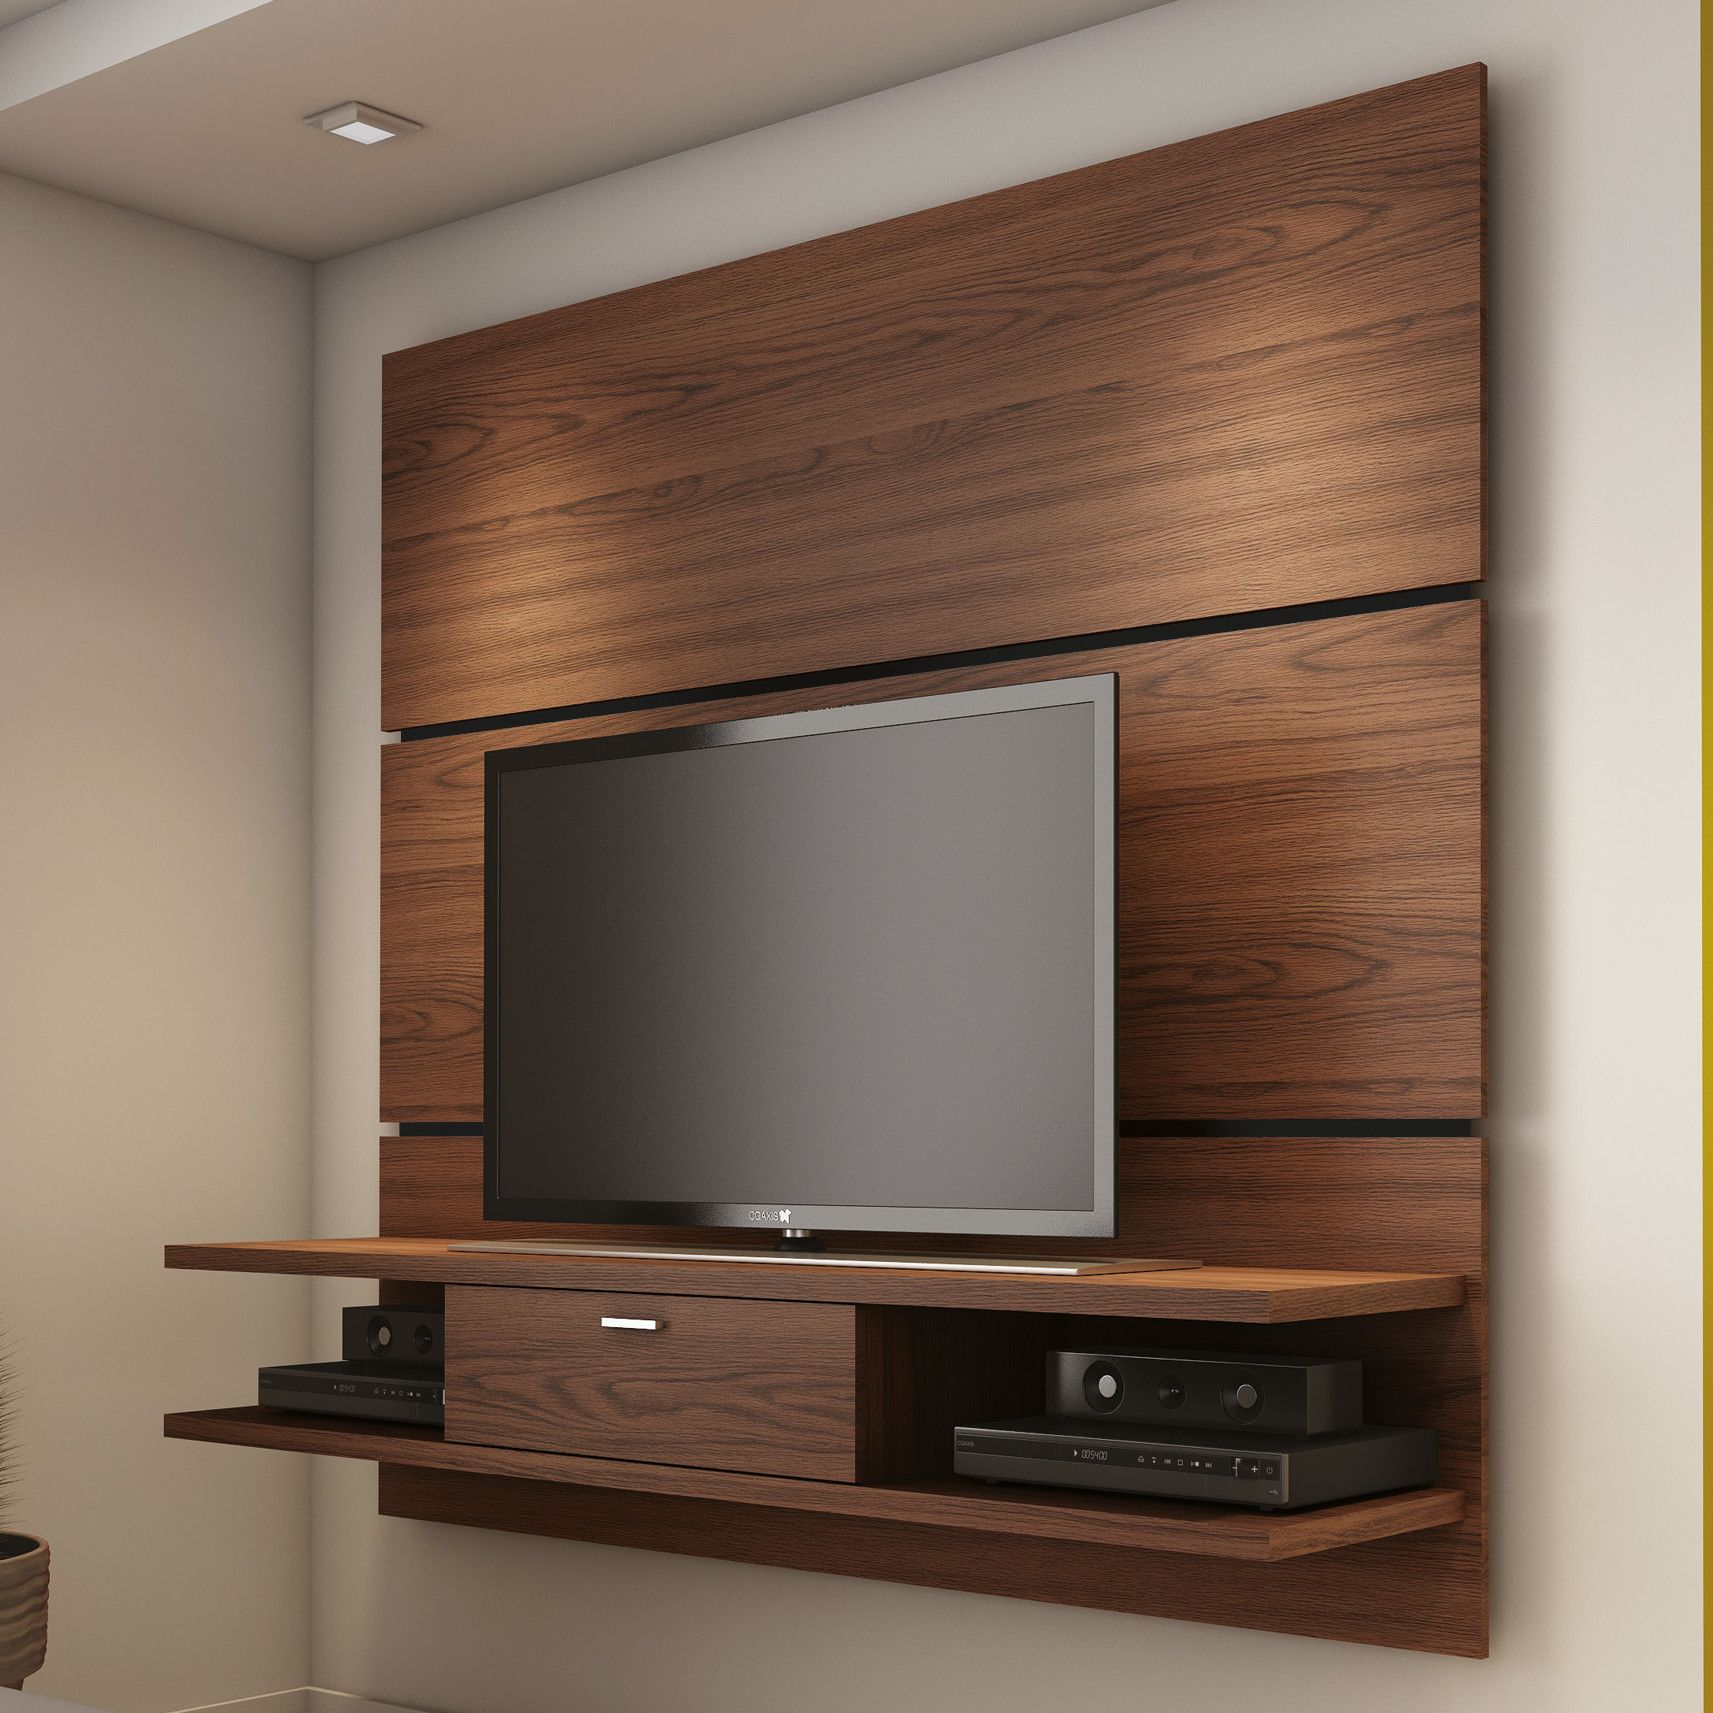 Exciting costco entertainment center for inspiring tv for Wall mounted tv enclosure